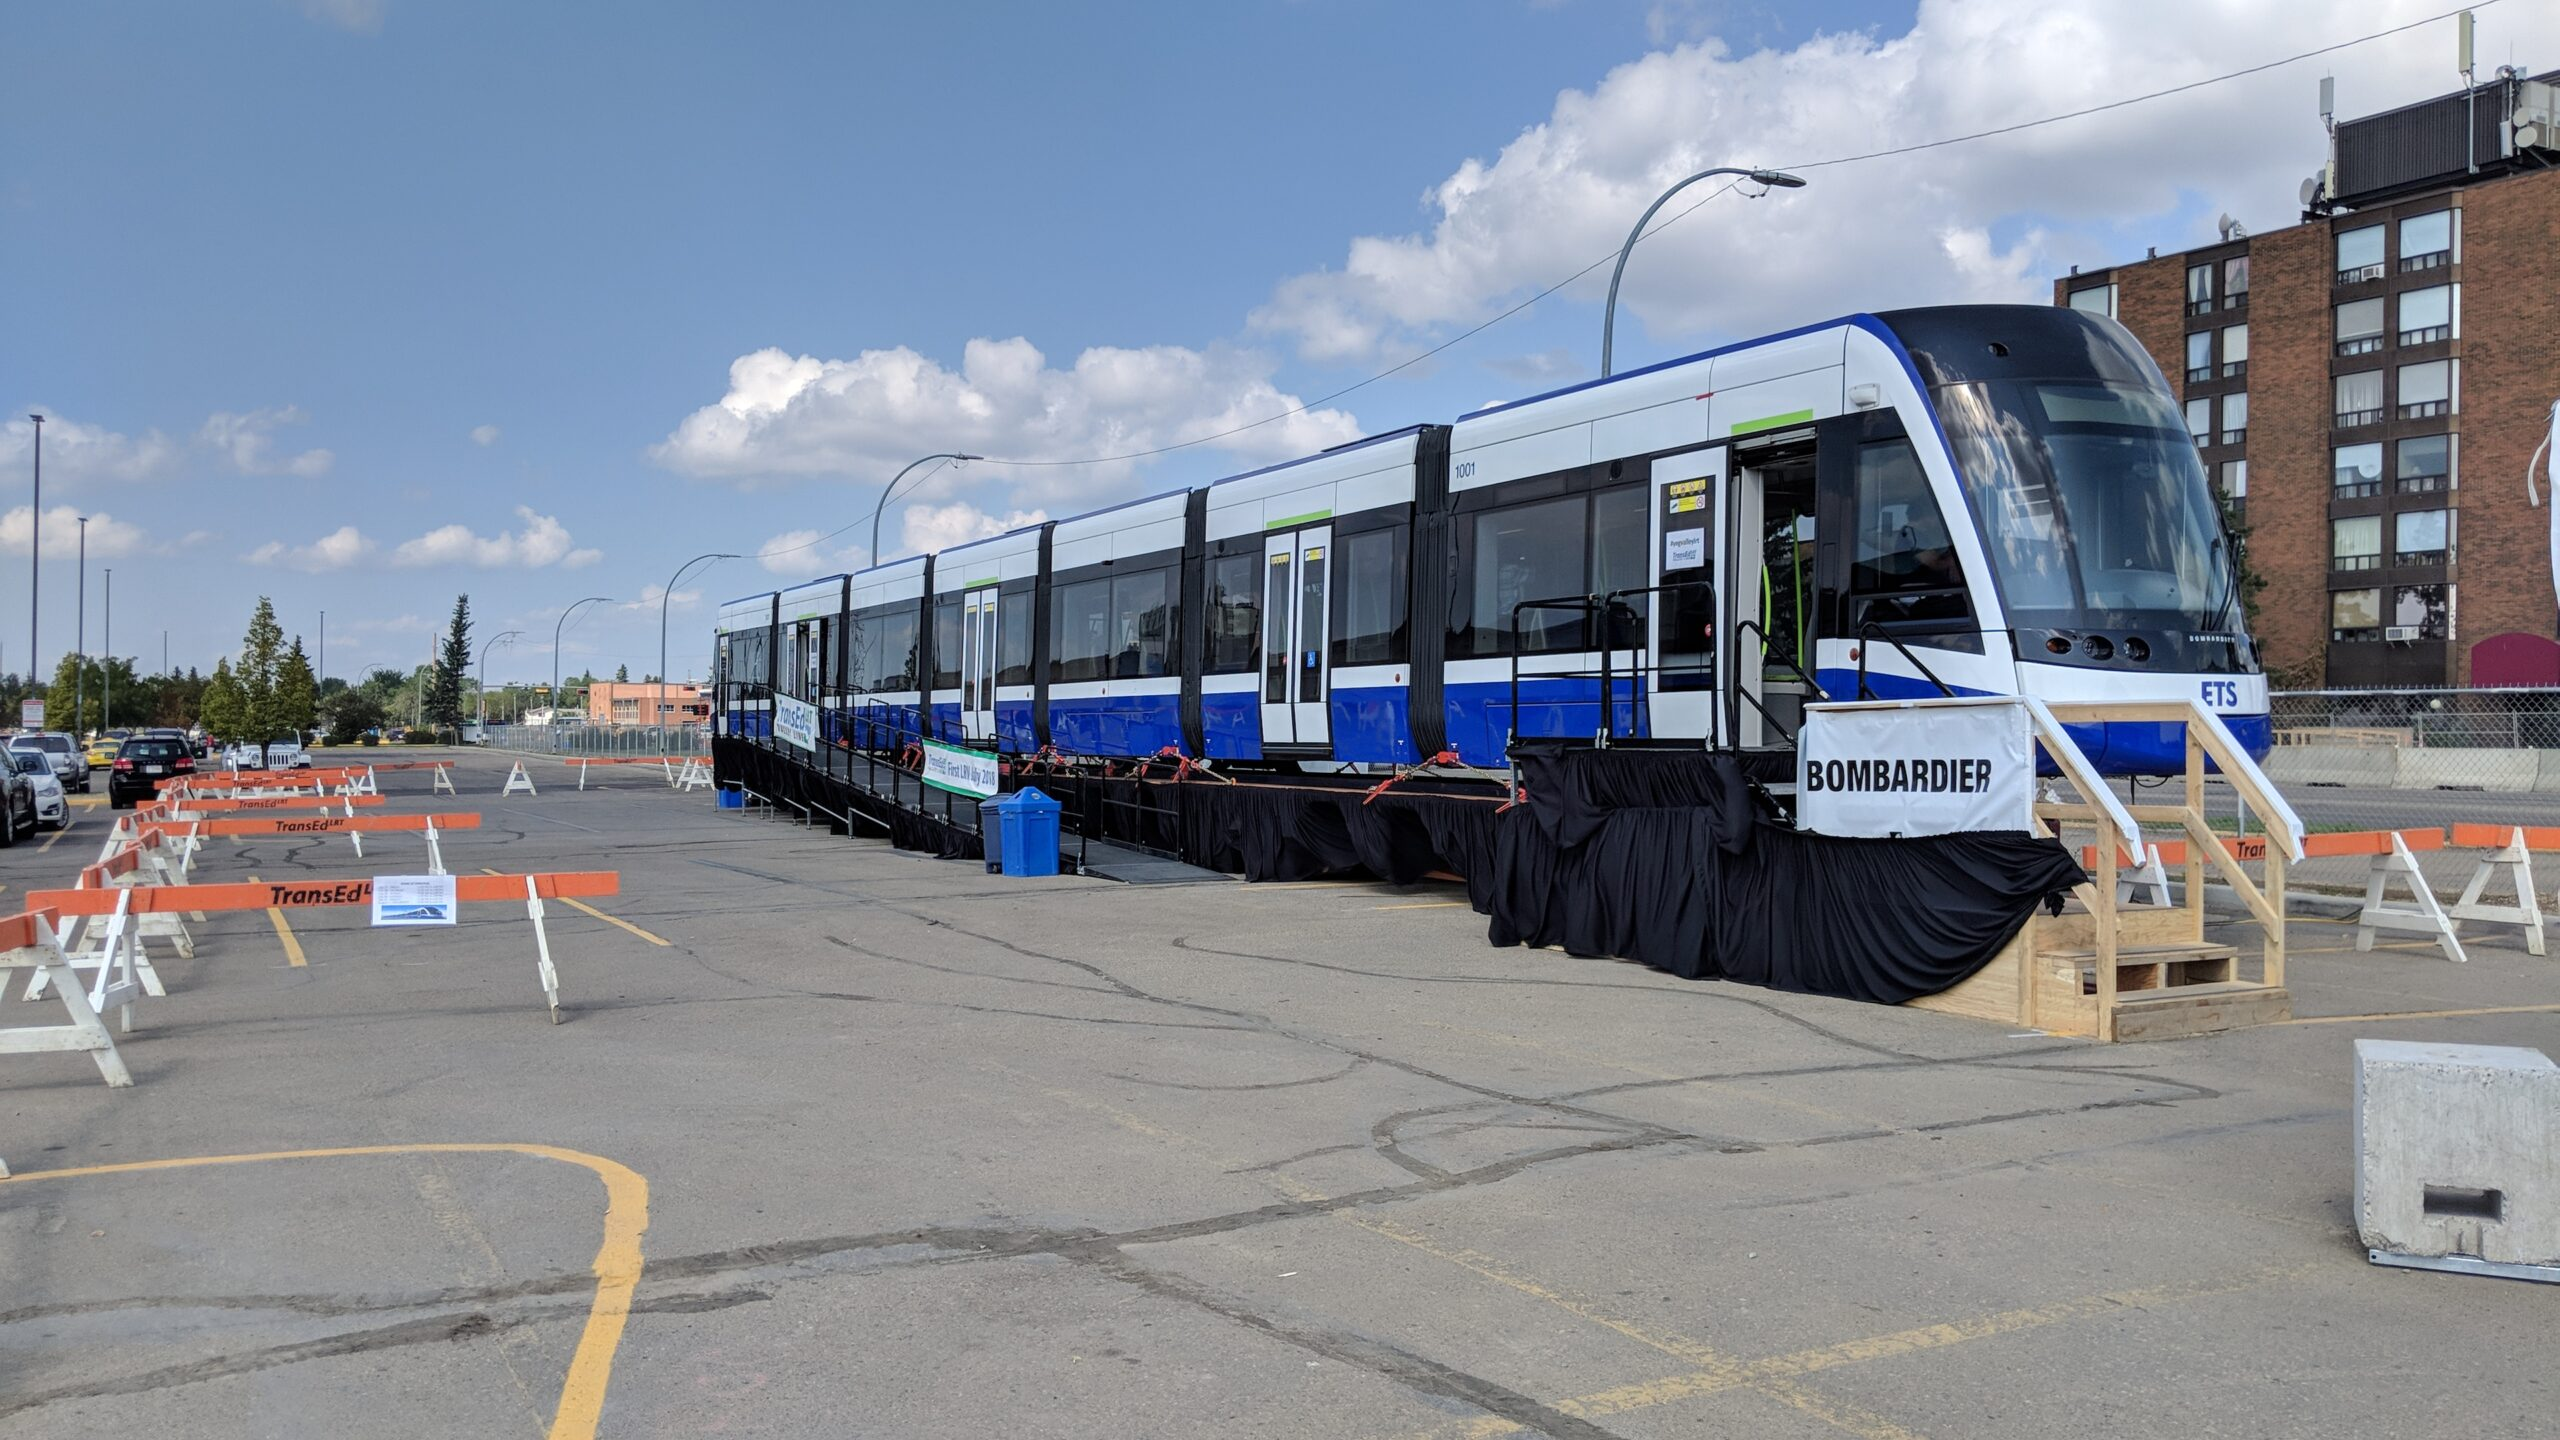 Rolling stock for the Valley Line is Bombardier Flexity Freedom